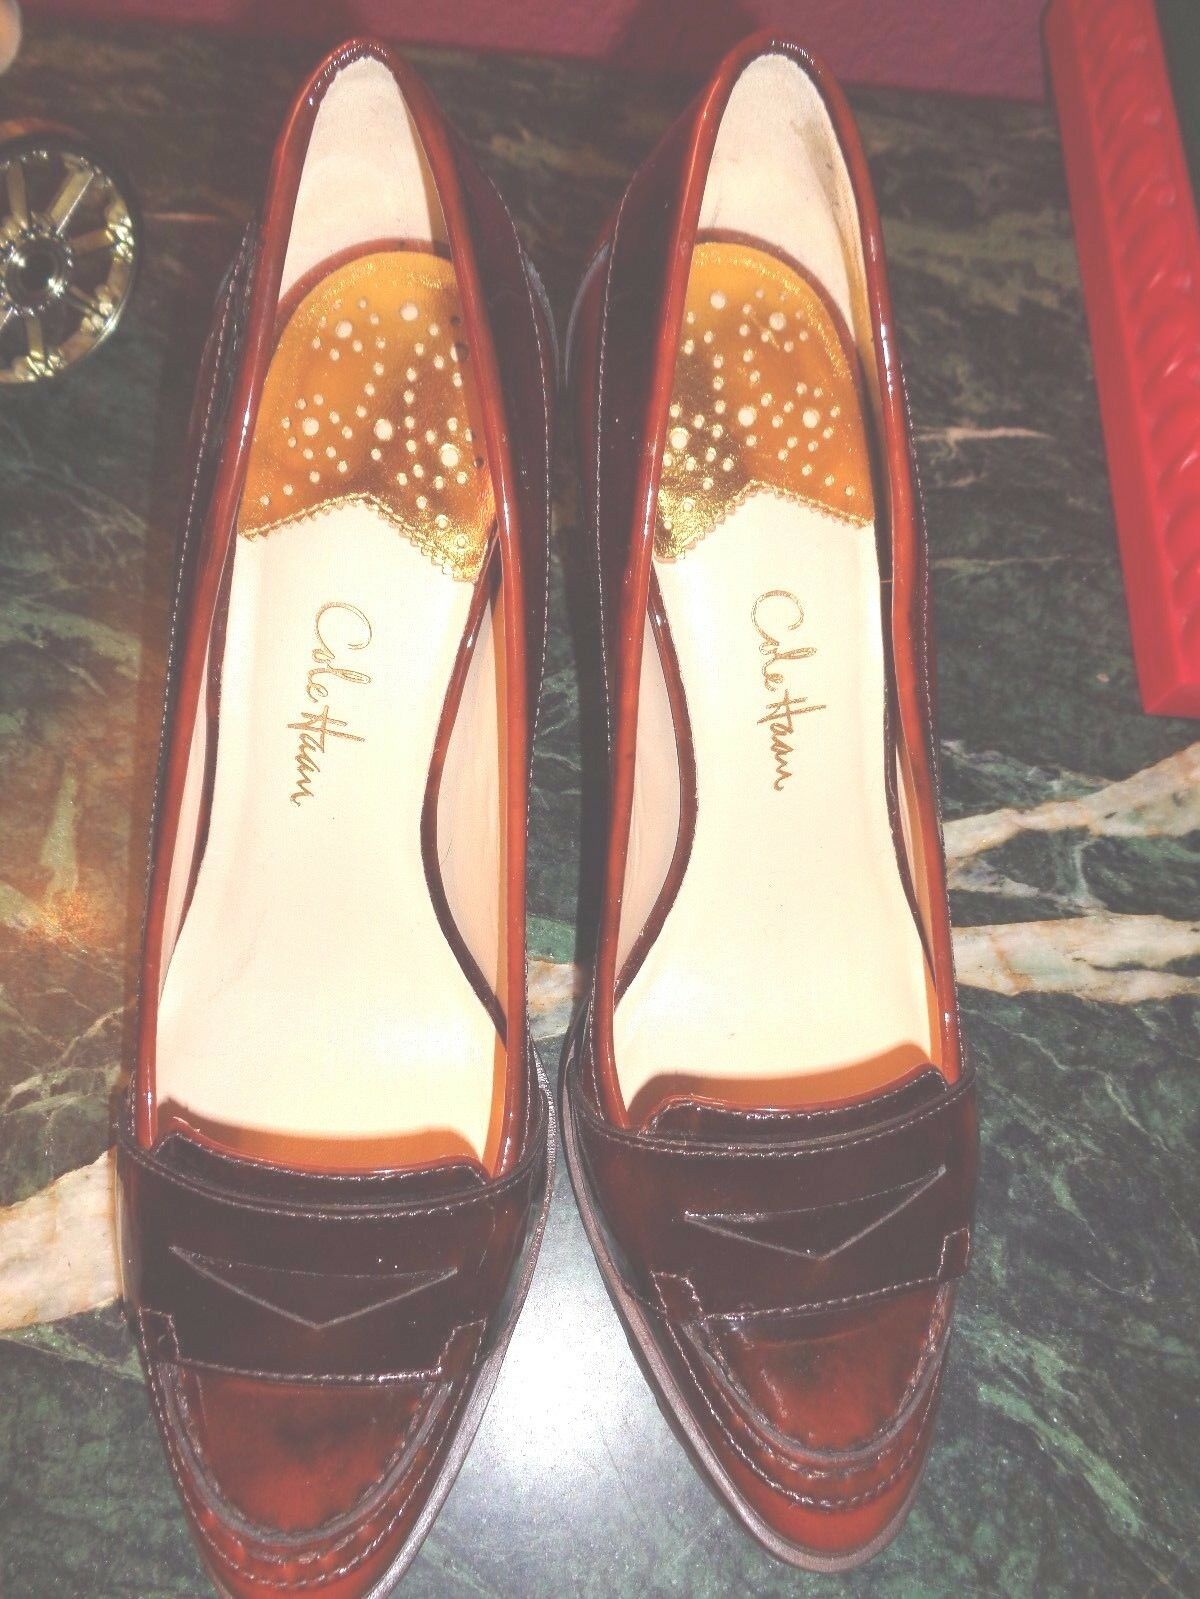 COLE HAAN  3 INCH HEEL IN SHADED BROWN SHINY PUMP 7.5B BRAZIL PRISTINE